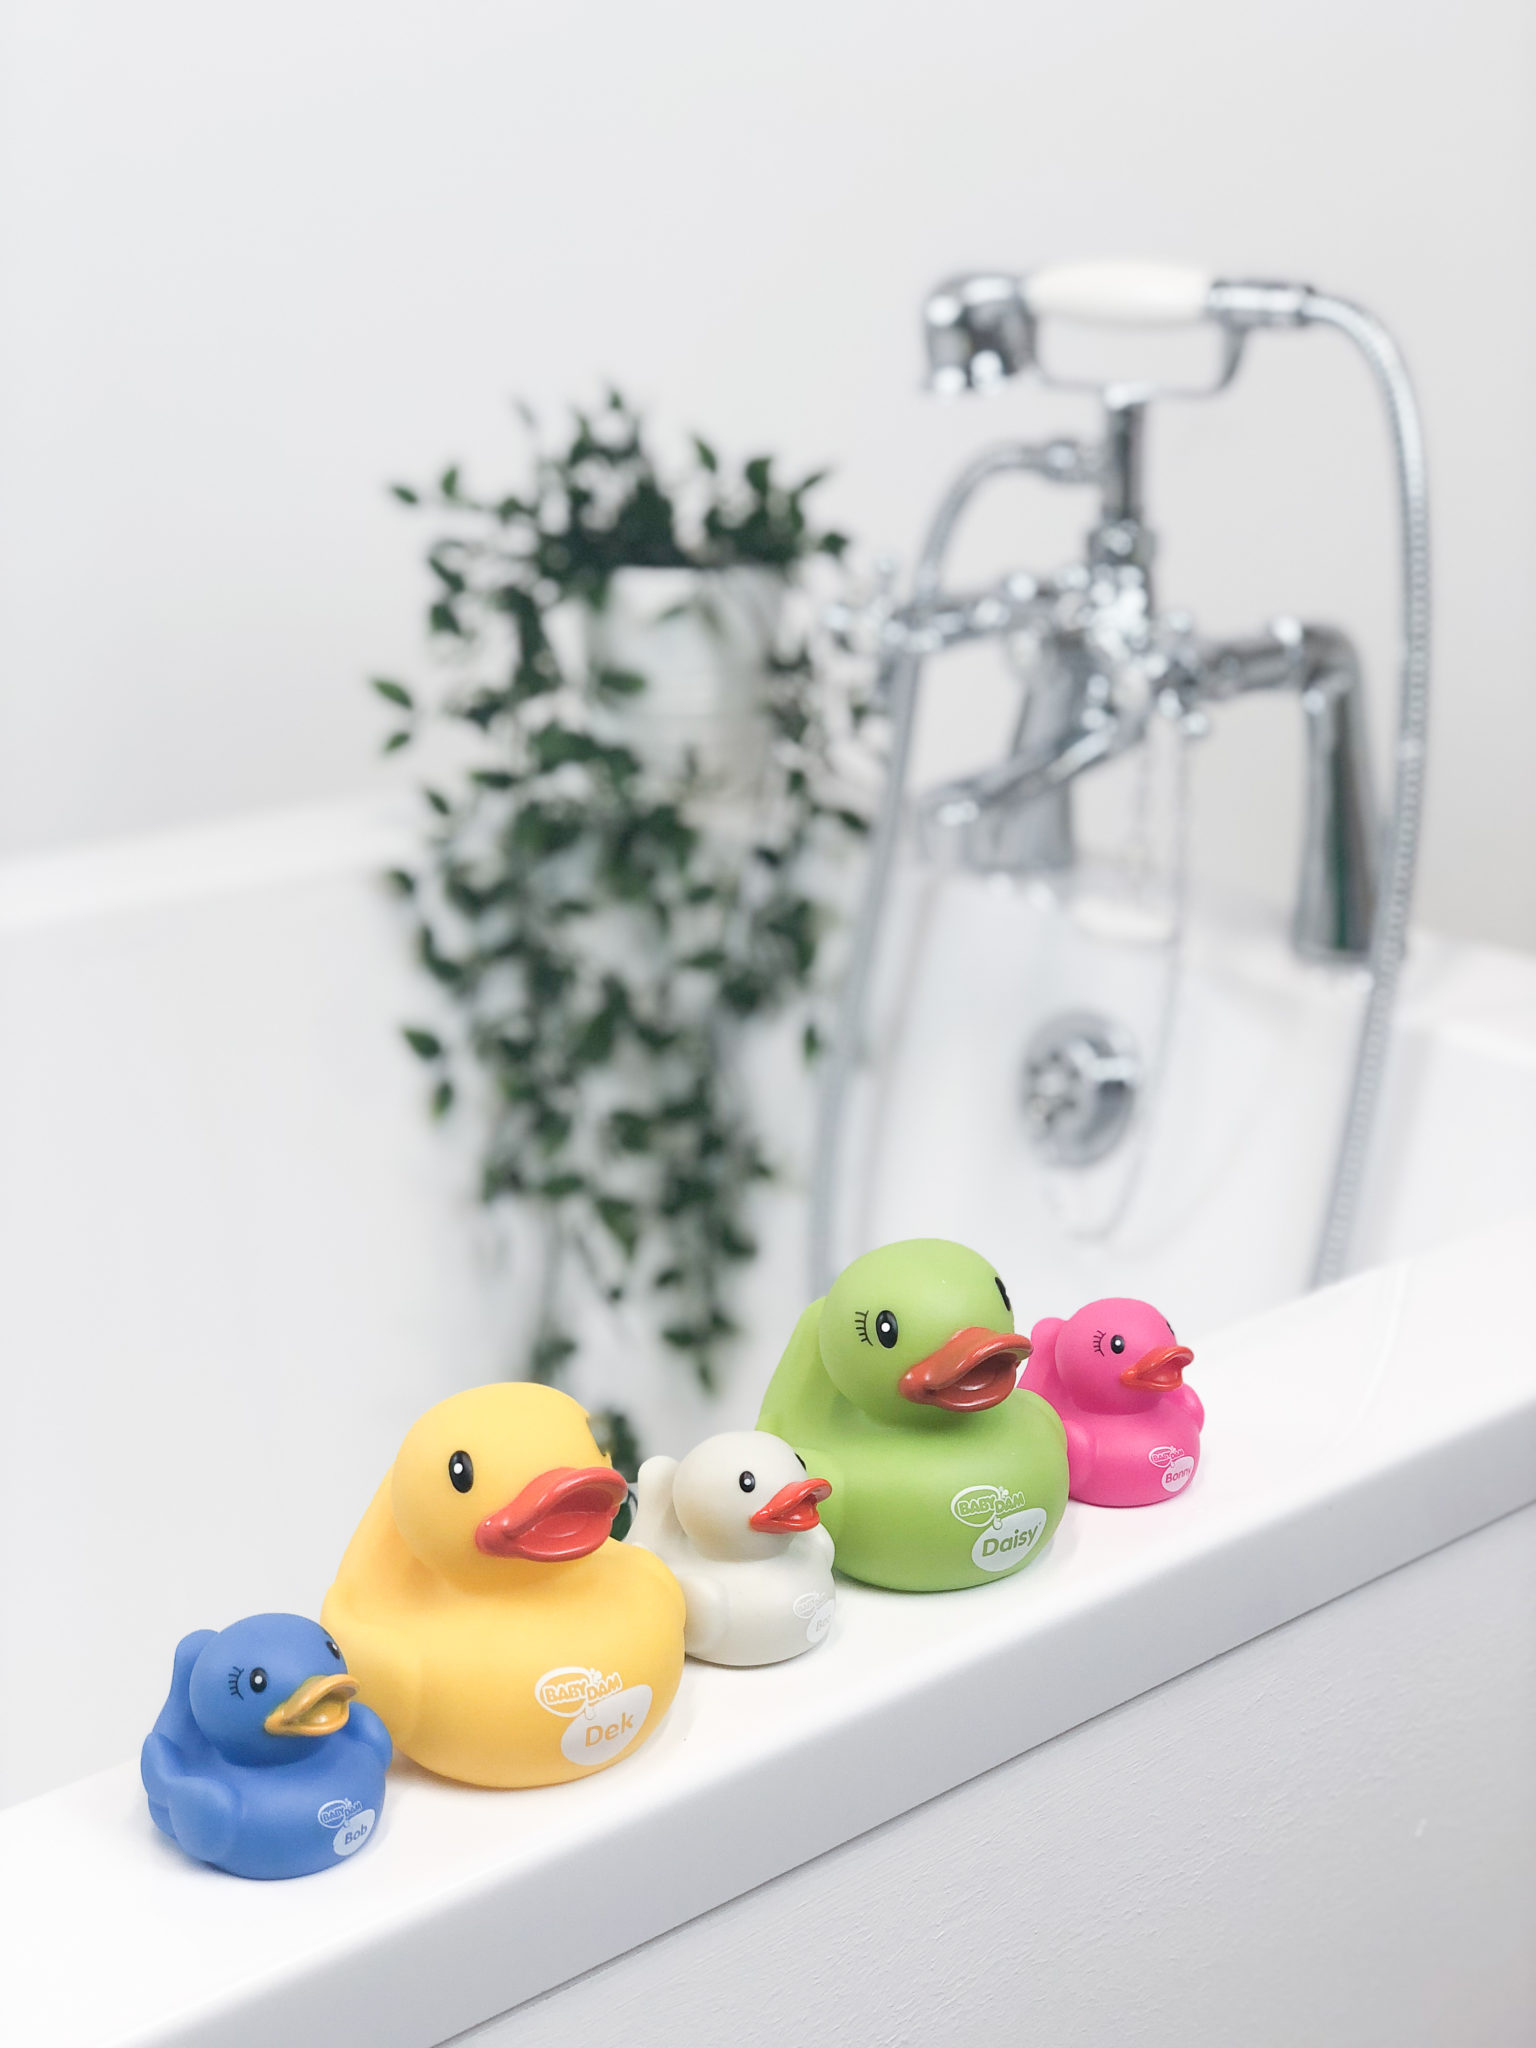 Our BabyDam Ducks Have Had A Revamp…No Soggy Bottoms Here